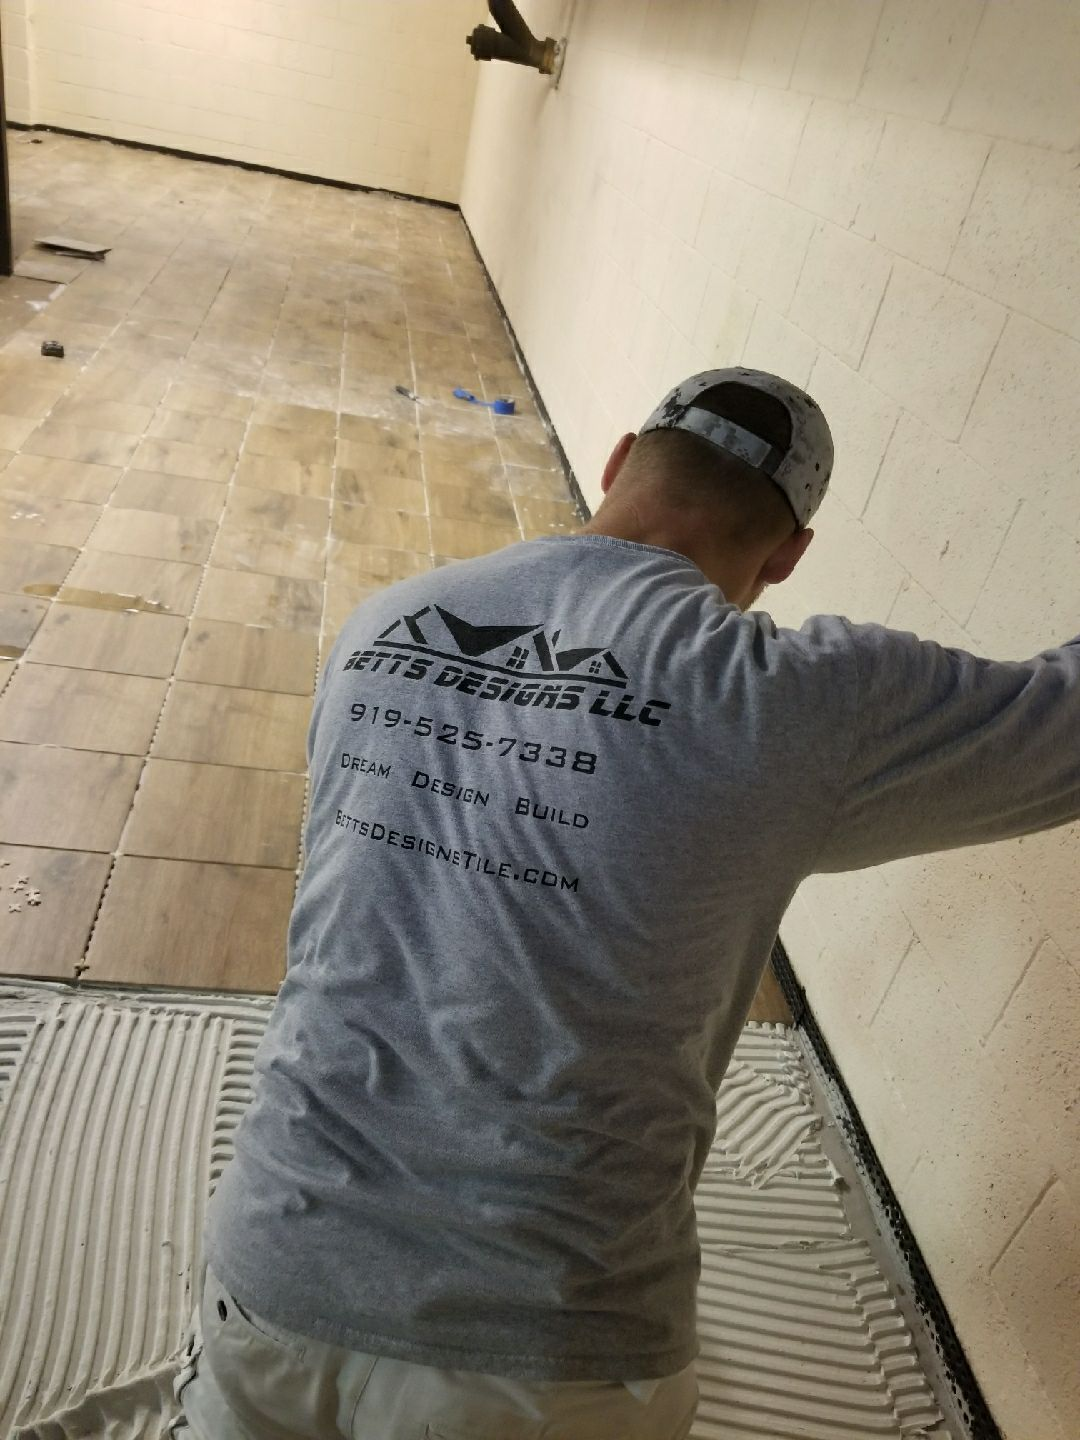 Betts Designs tile installation